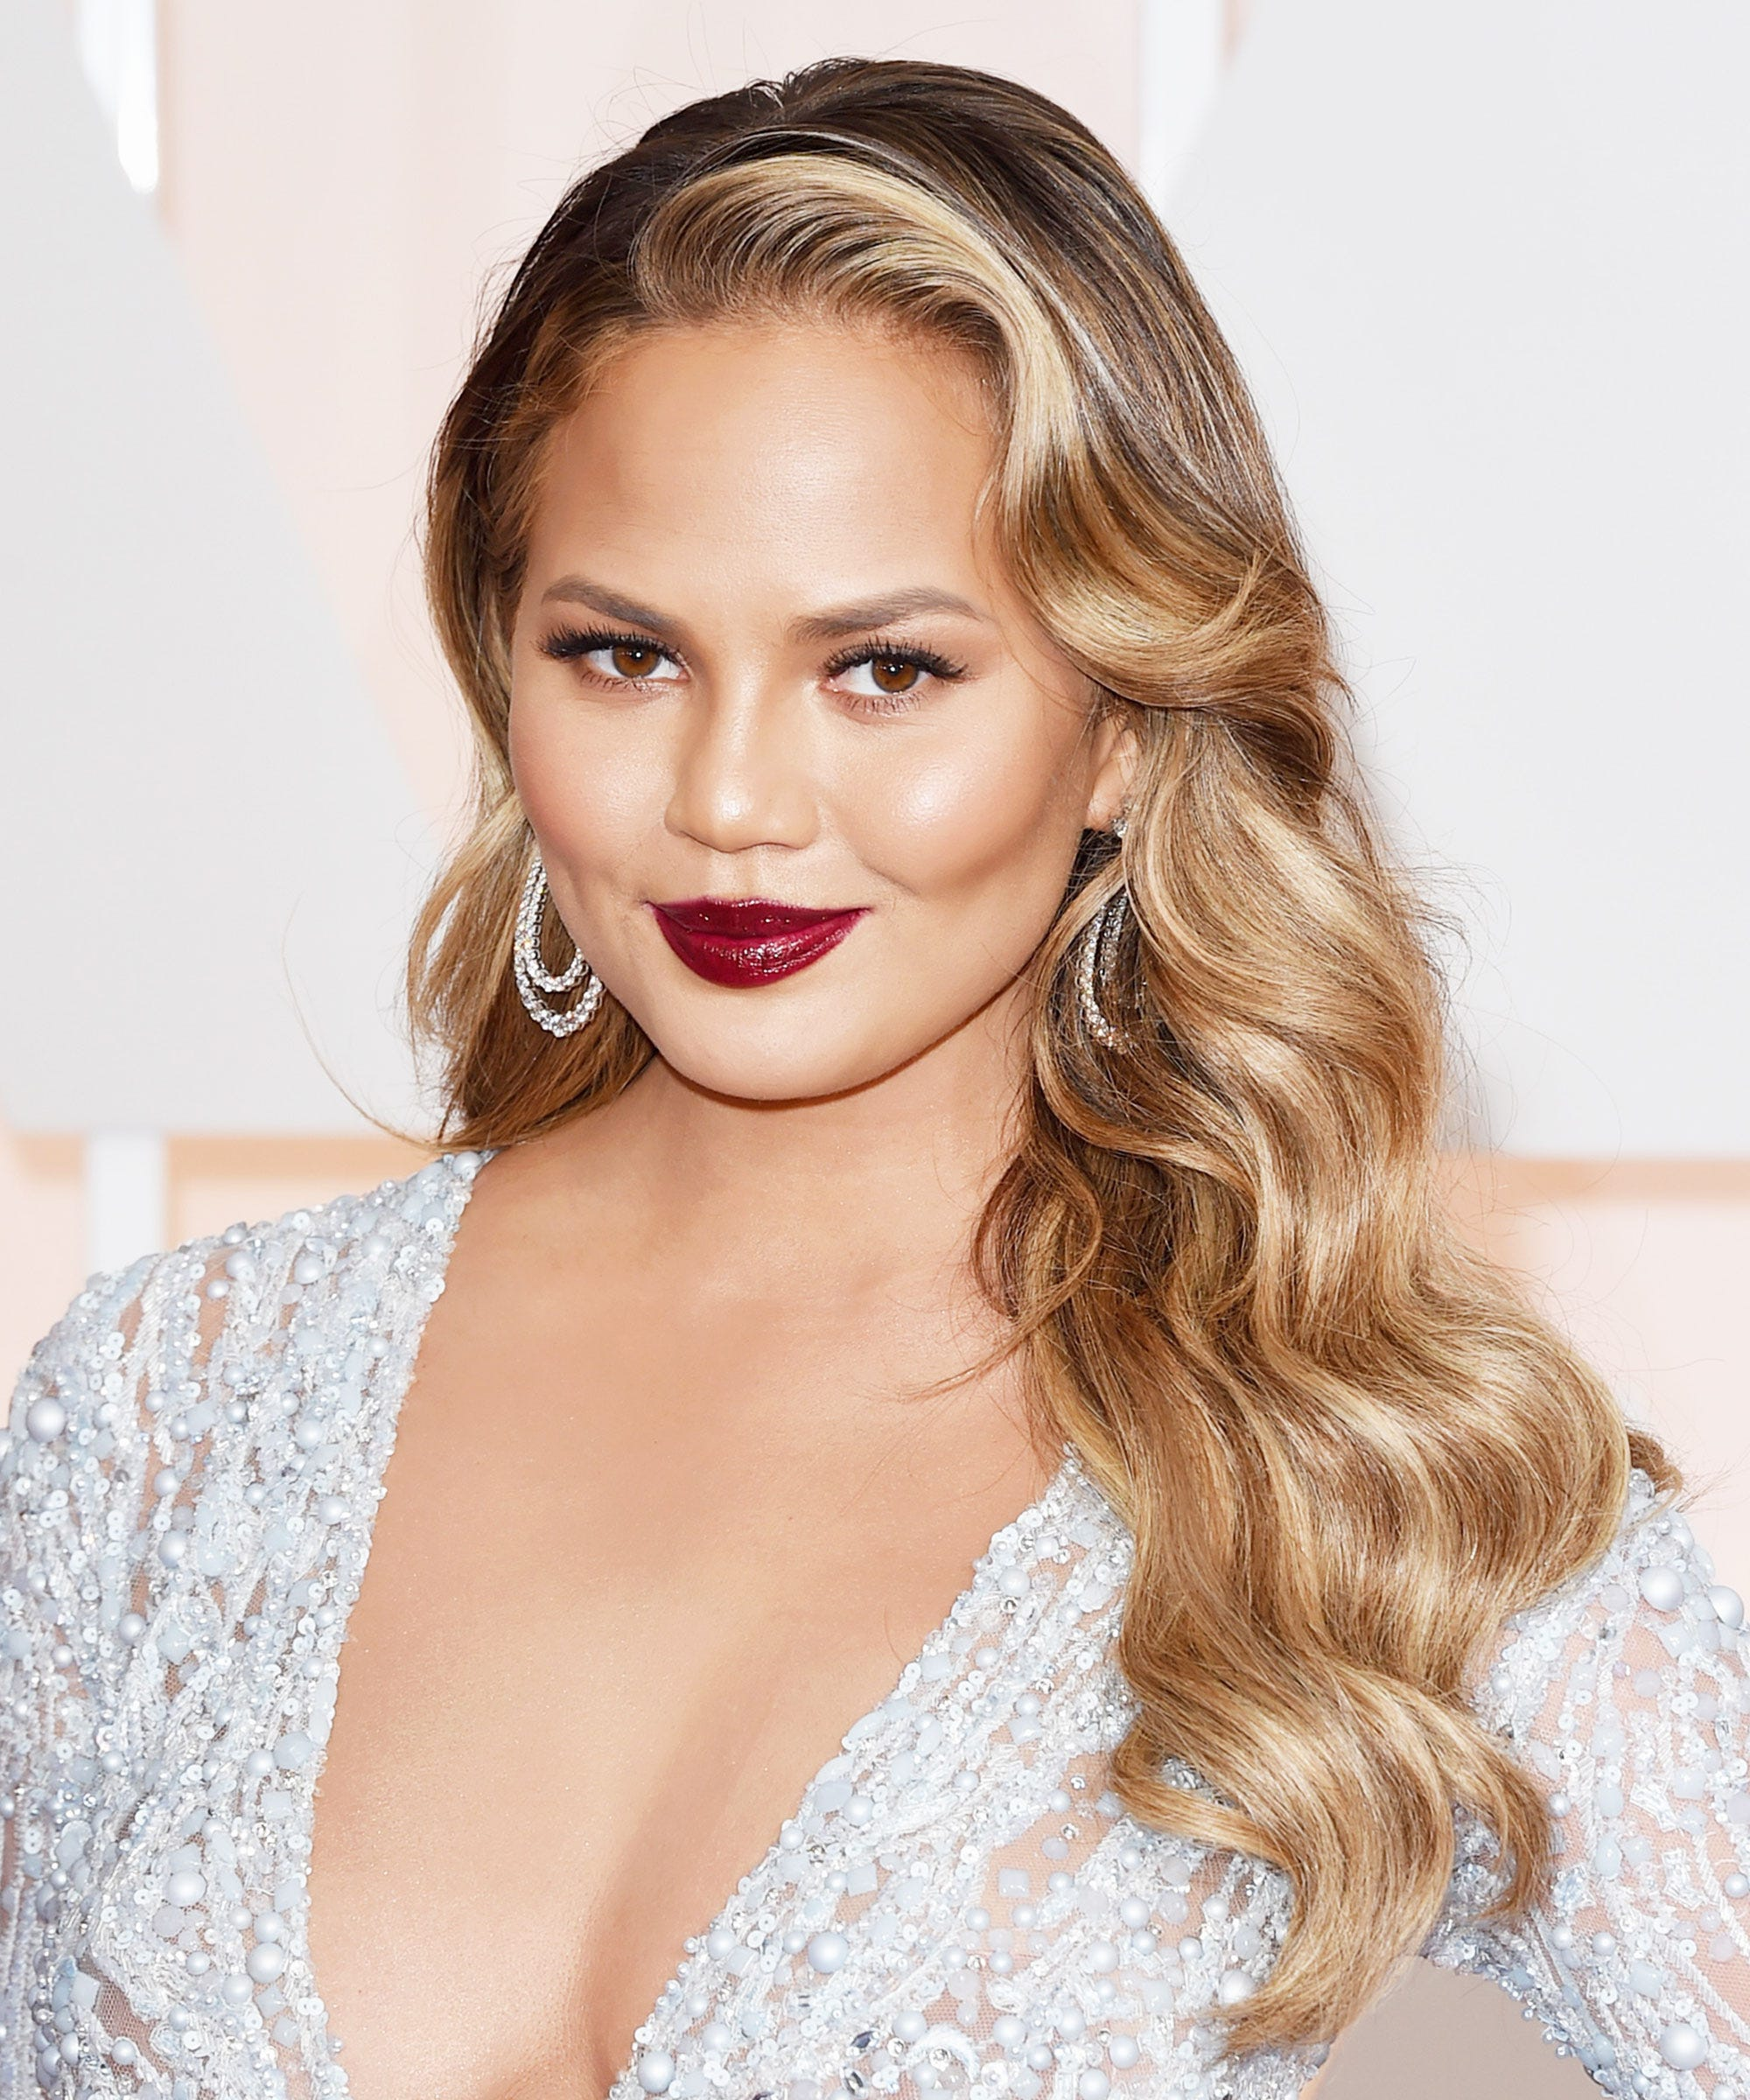 Chrissy Teigen Is Getting Her Own Judge Judy-Inspired Show & It Couldn't Be More Perfect